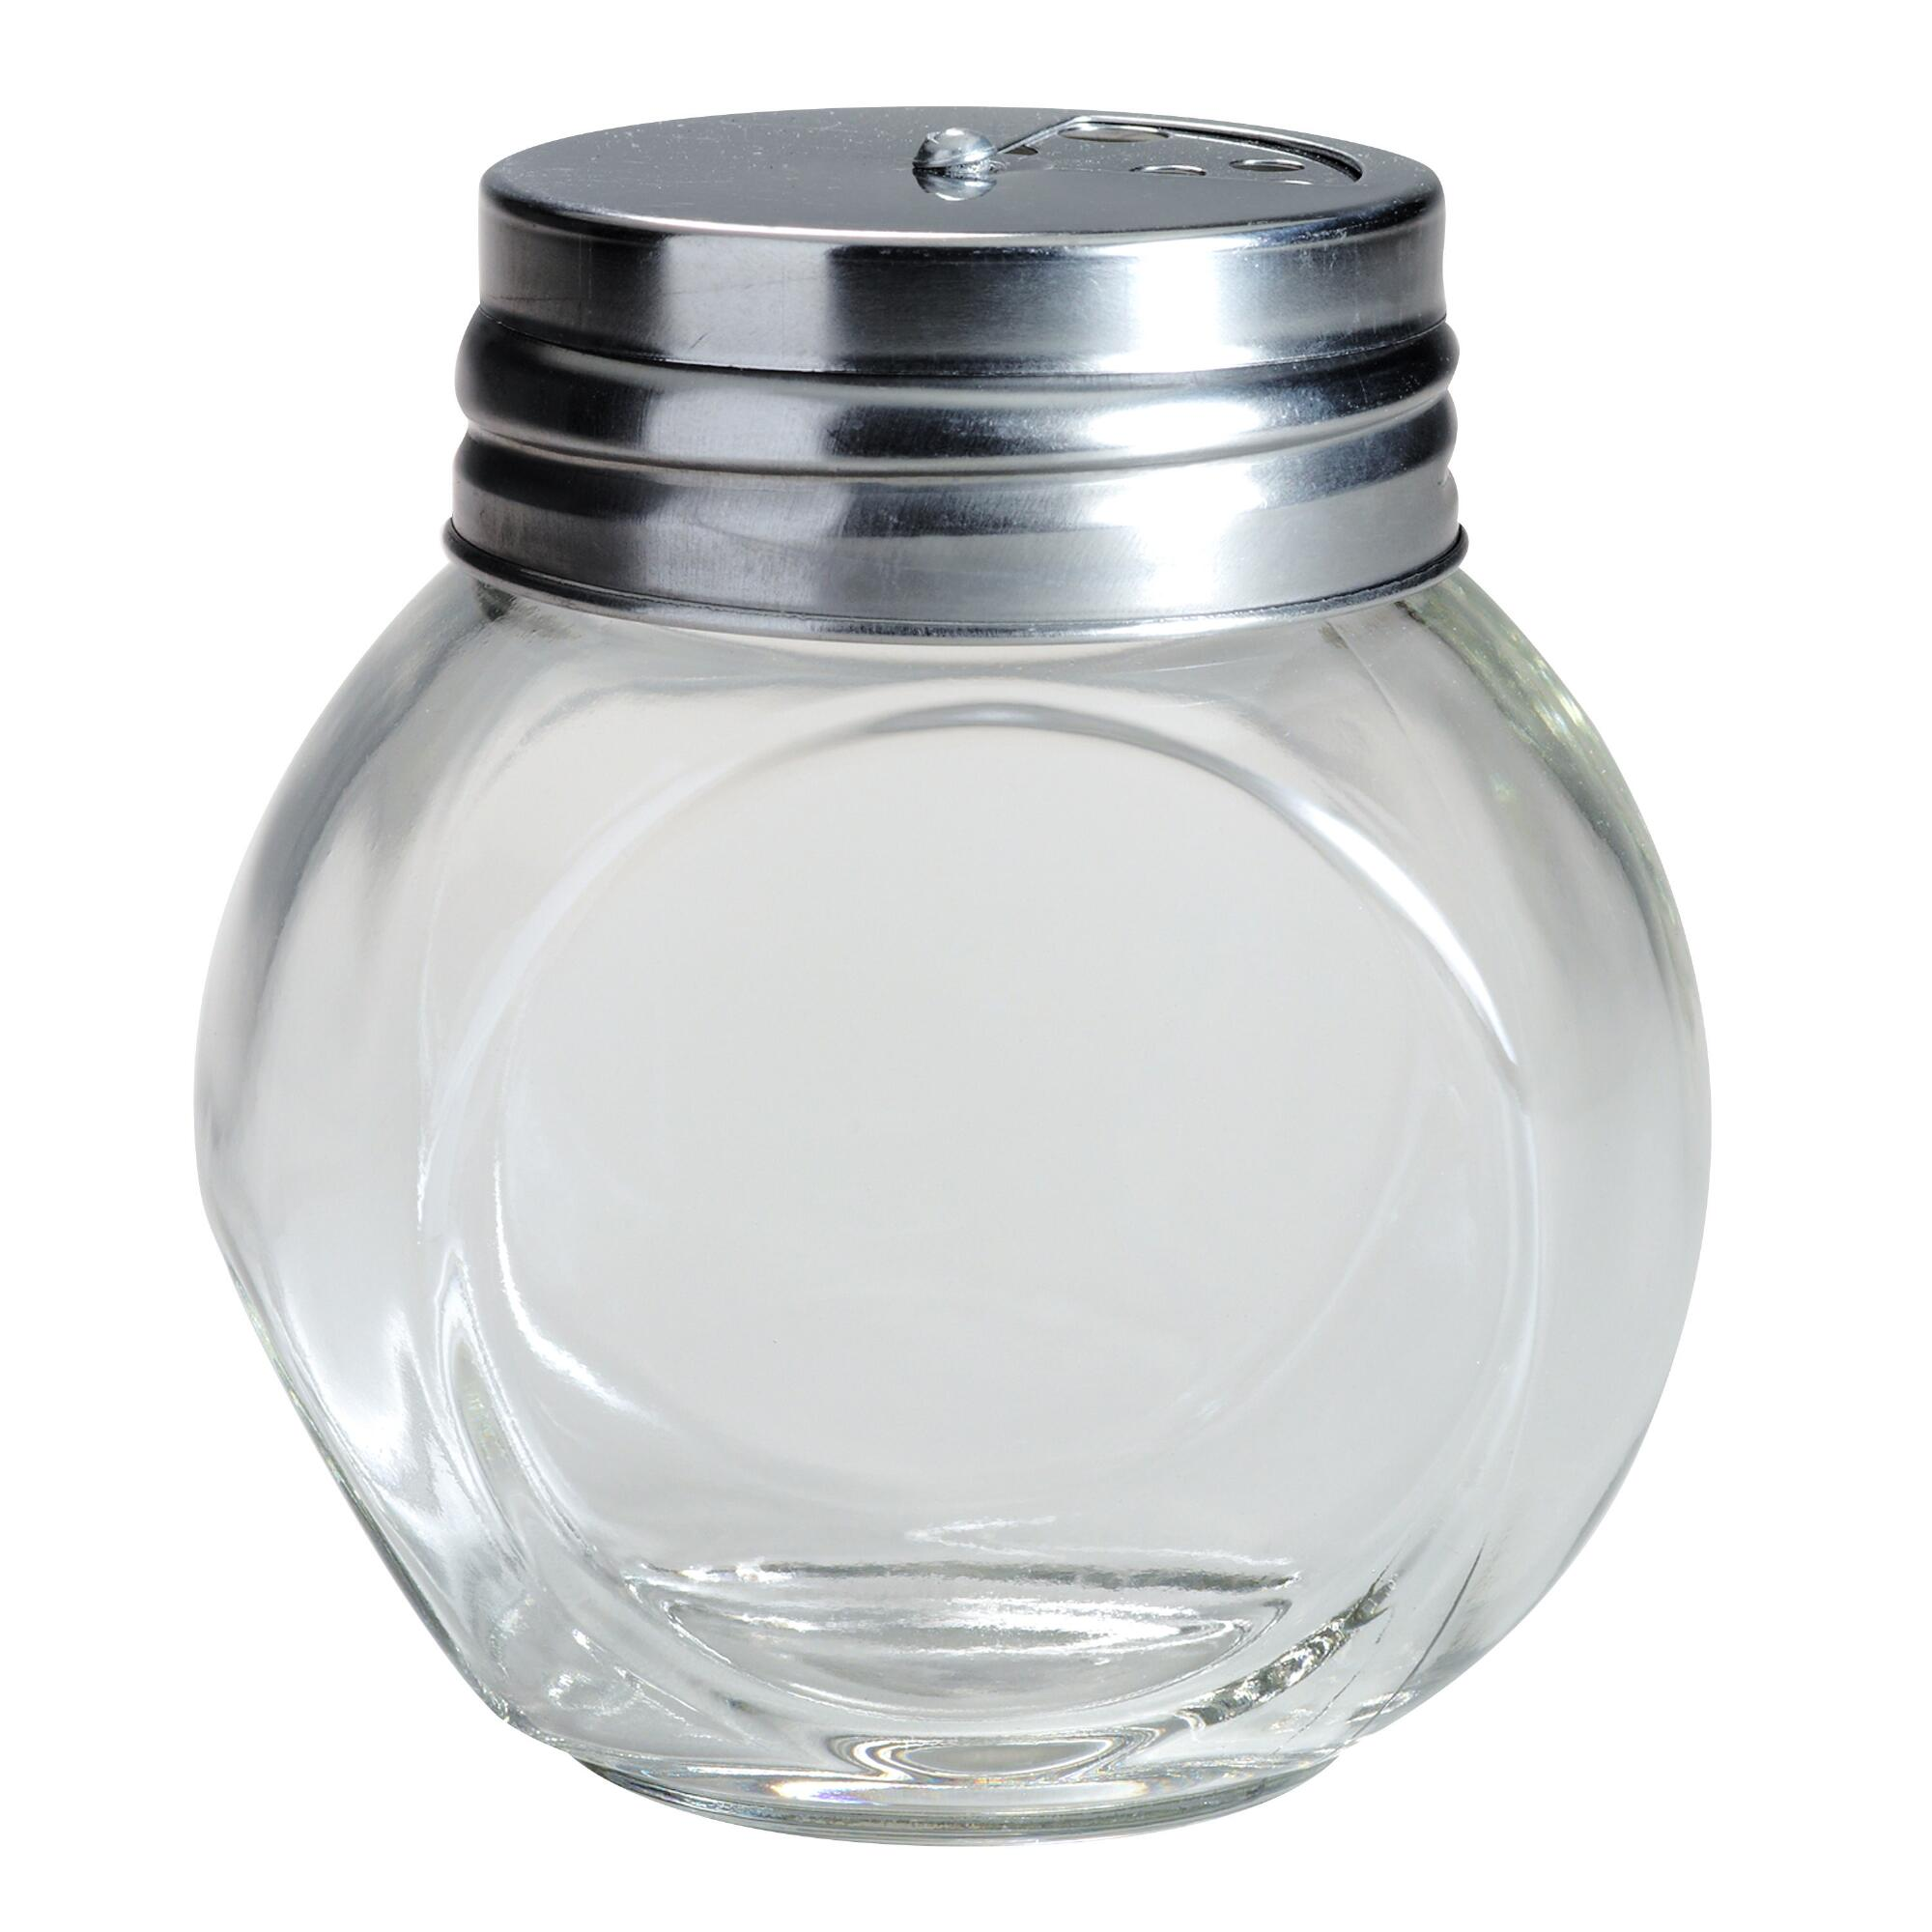 Round spice jars with metal shaker lids set of 4 world market